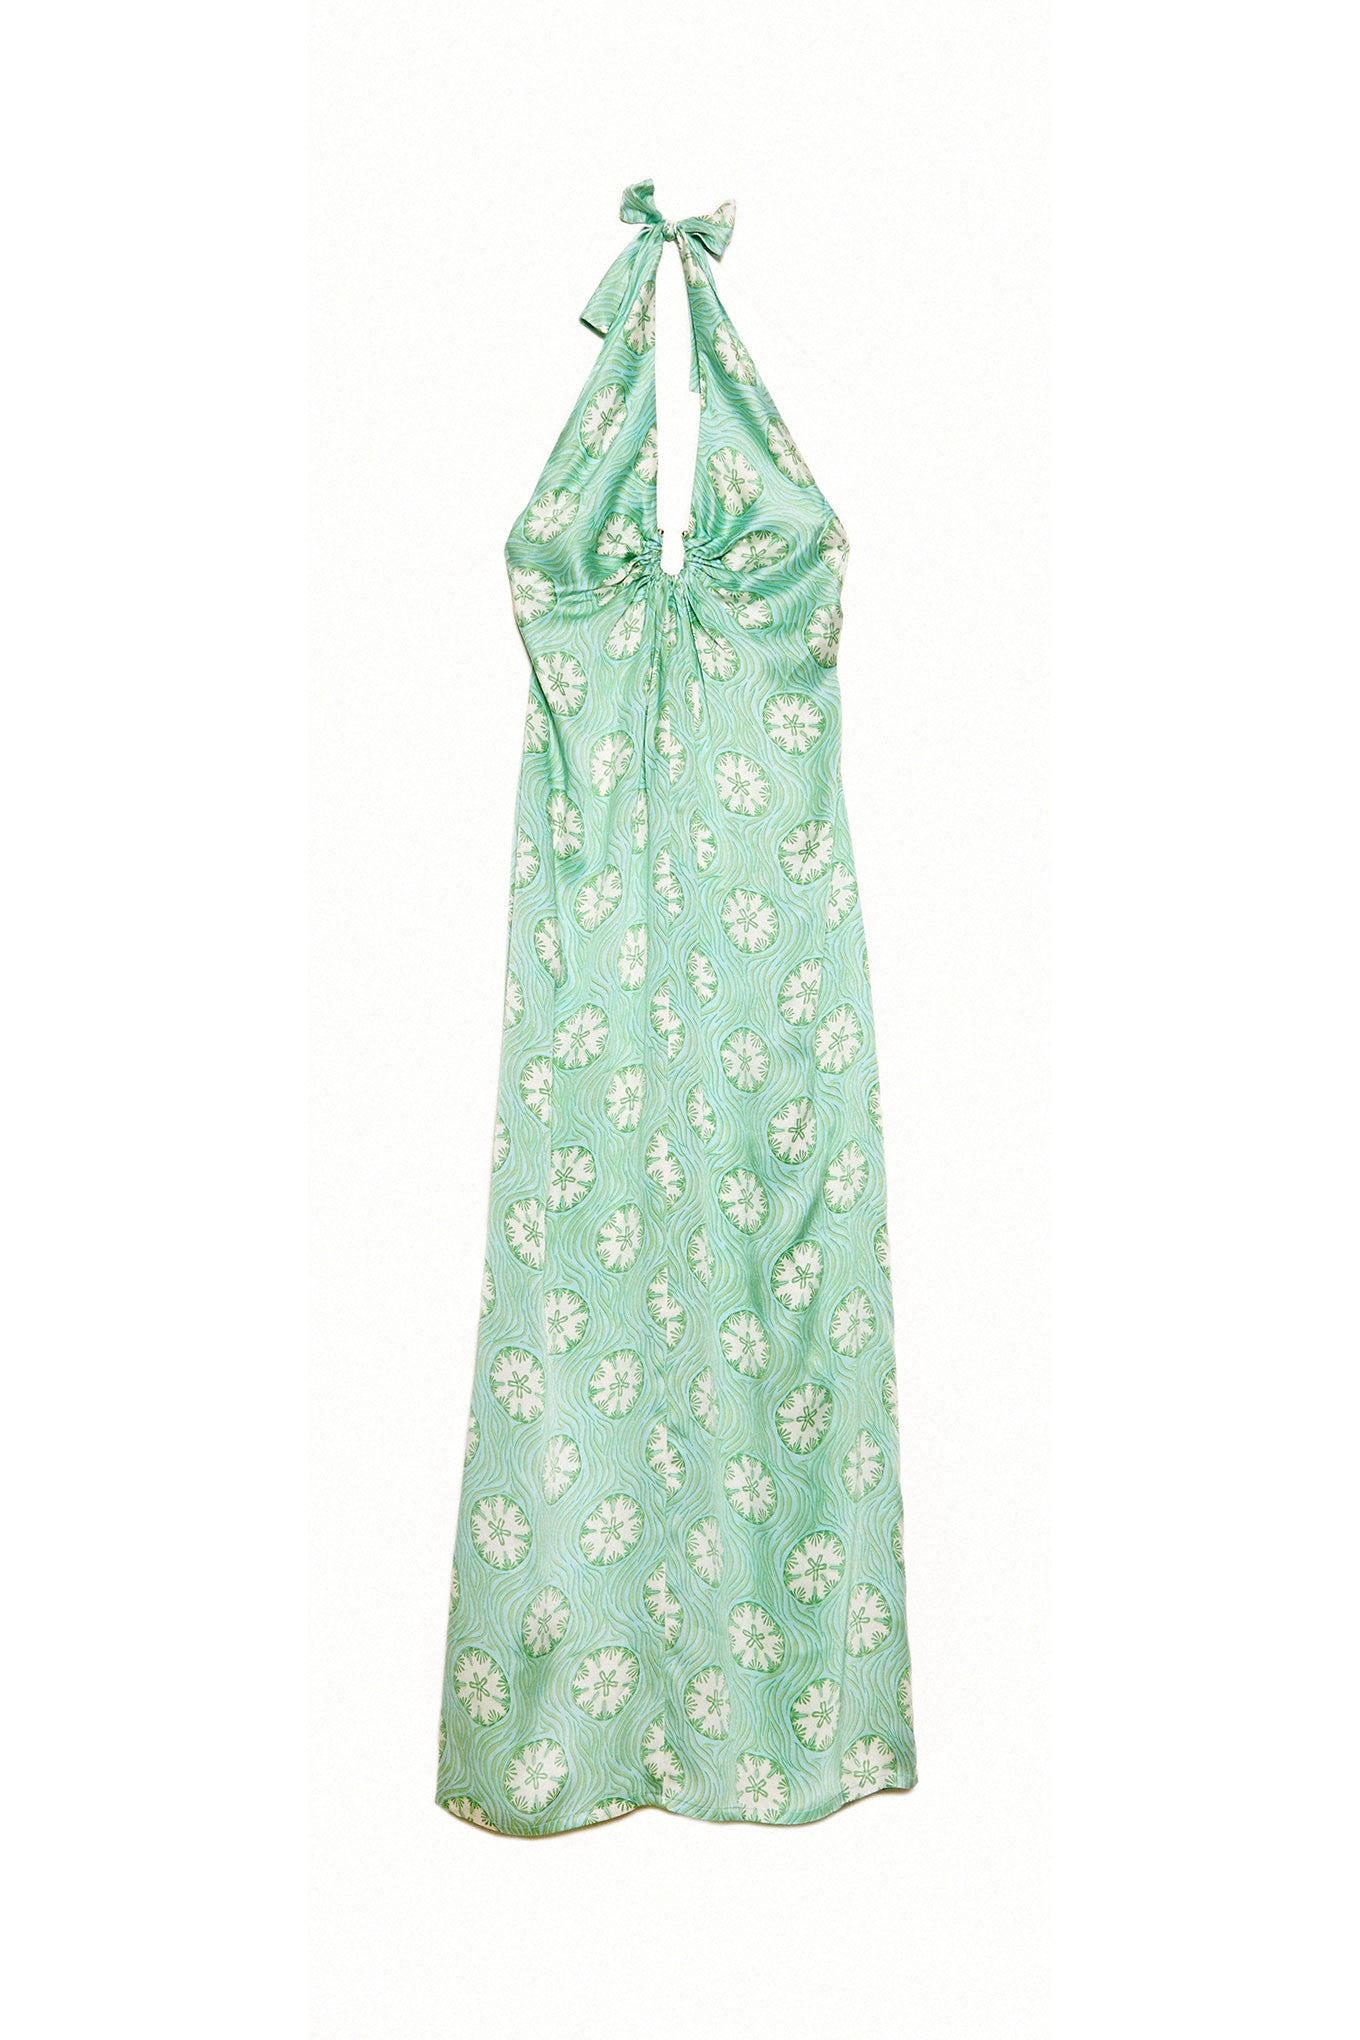 Lotty B Halter-Neck Dress (Sand Dollar Repeat Green)